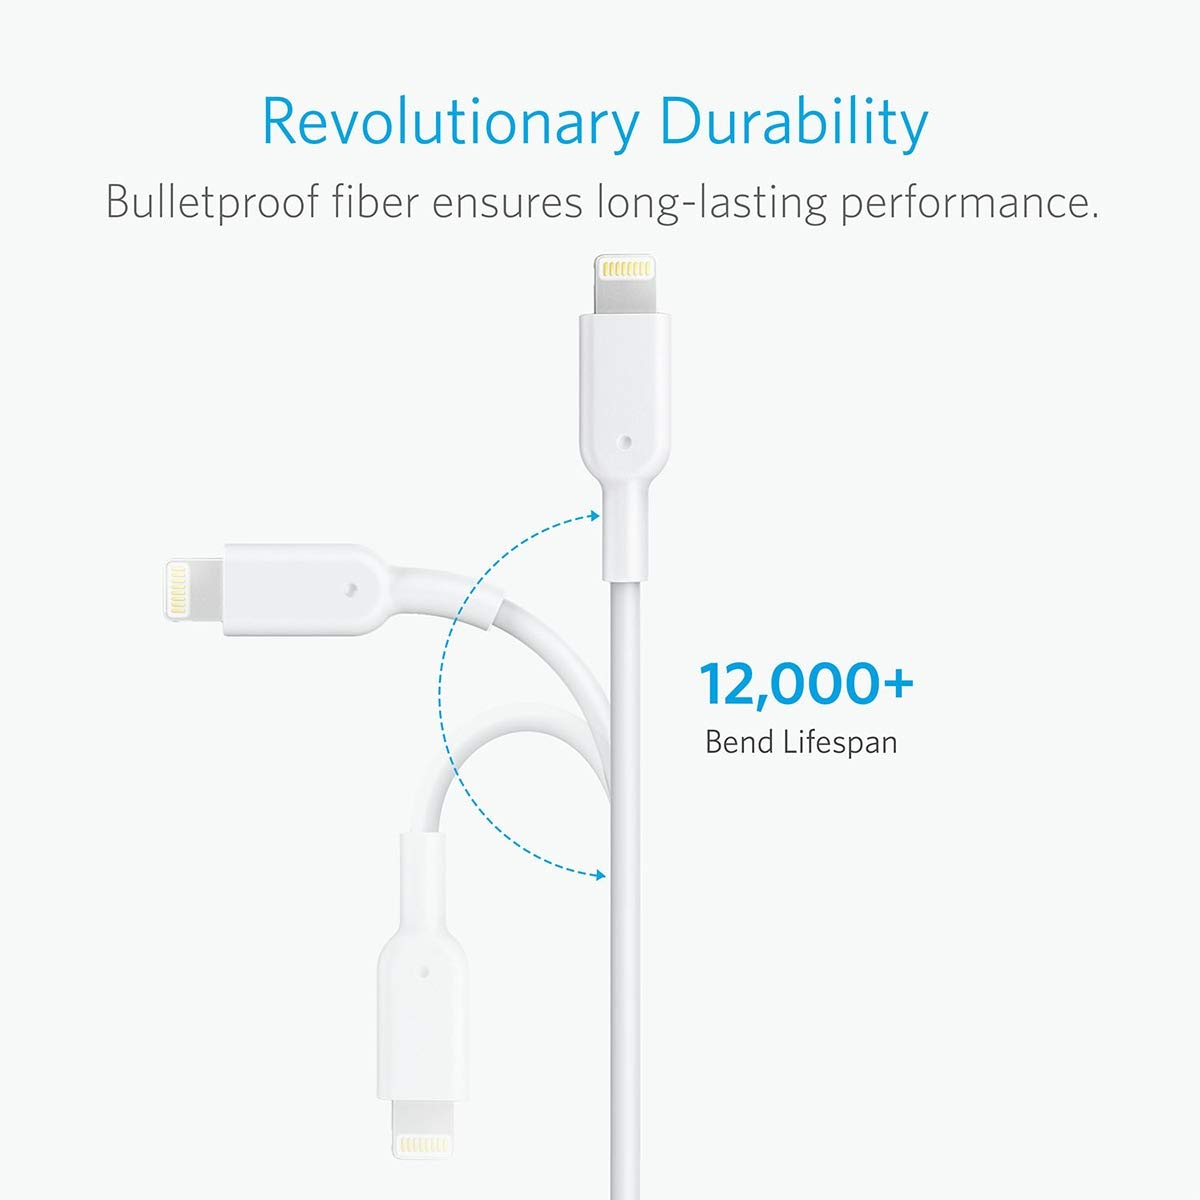 Lightning Cable (6ft) Anker Powerline II Lightning Cable, Apple MFi Certified iPhone Charger, Ultra Durable for iPhone Xs/XS Max/XR/X / 8/8 Plus / 7/7 Plus / 6/6 Plus/iPad(White) by Anker (Image #3)